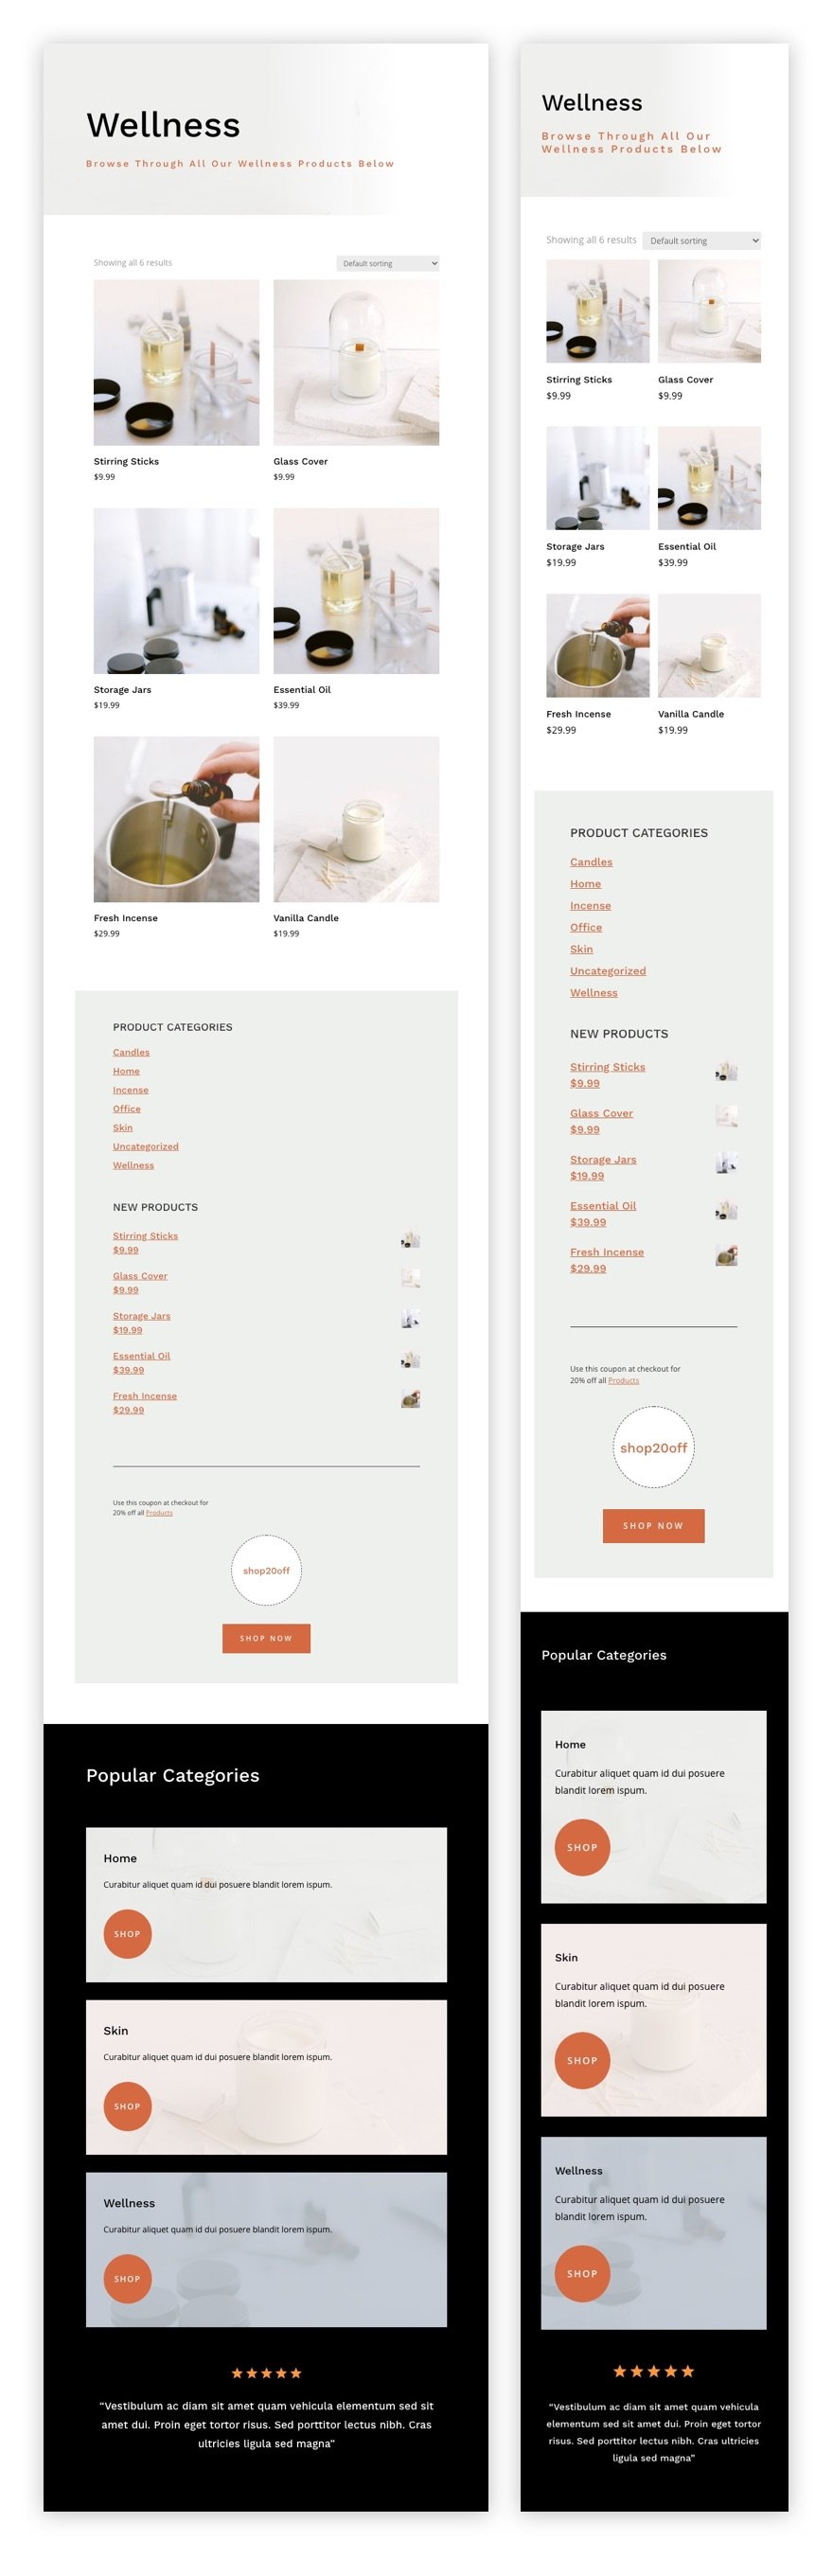 candle making product category page template